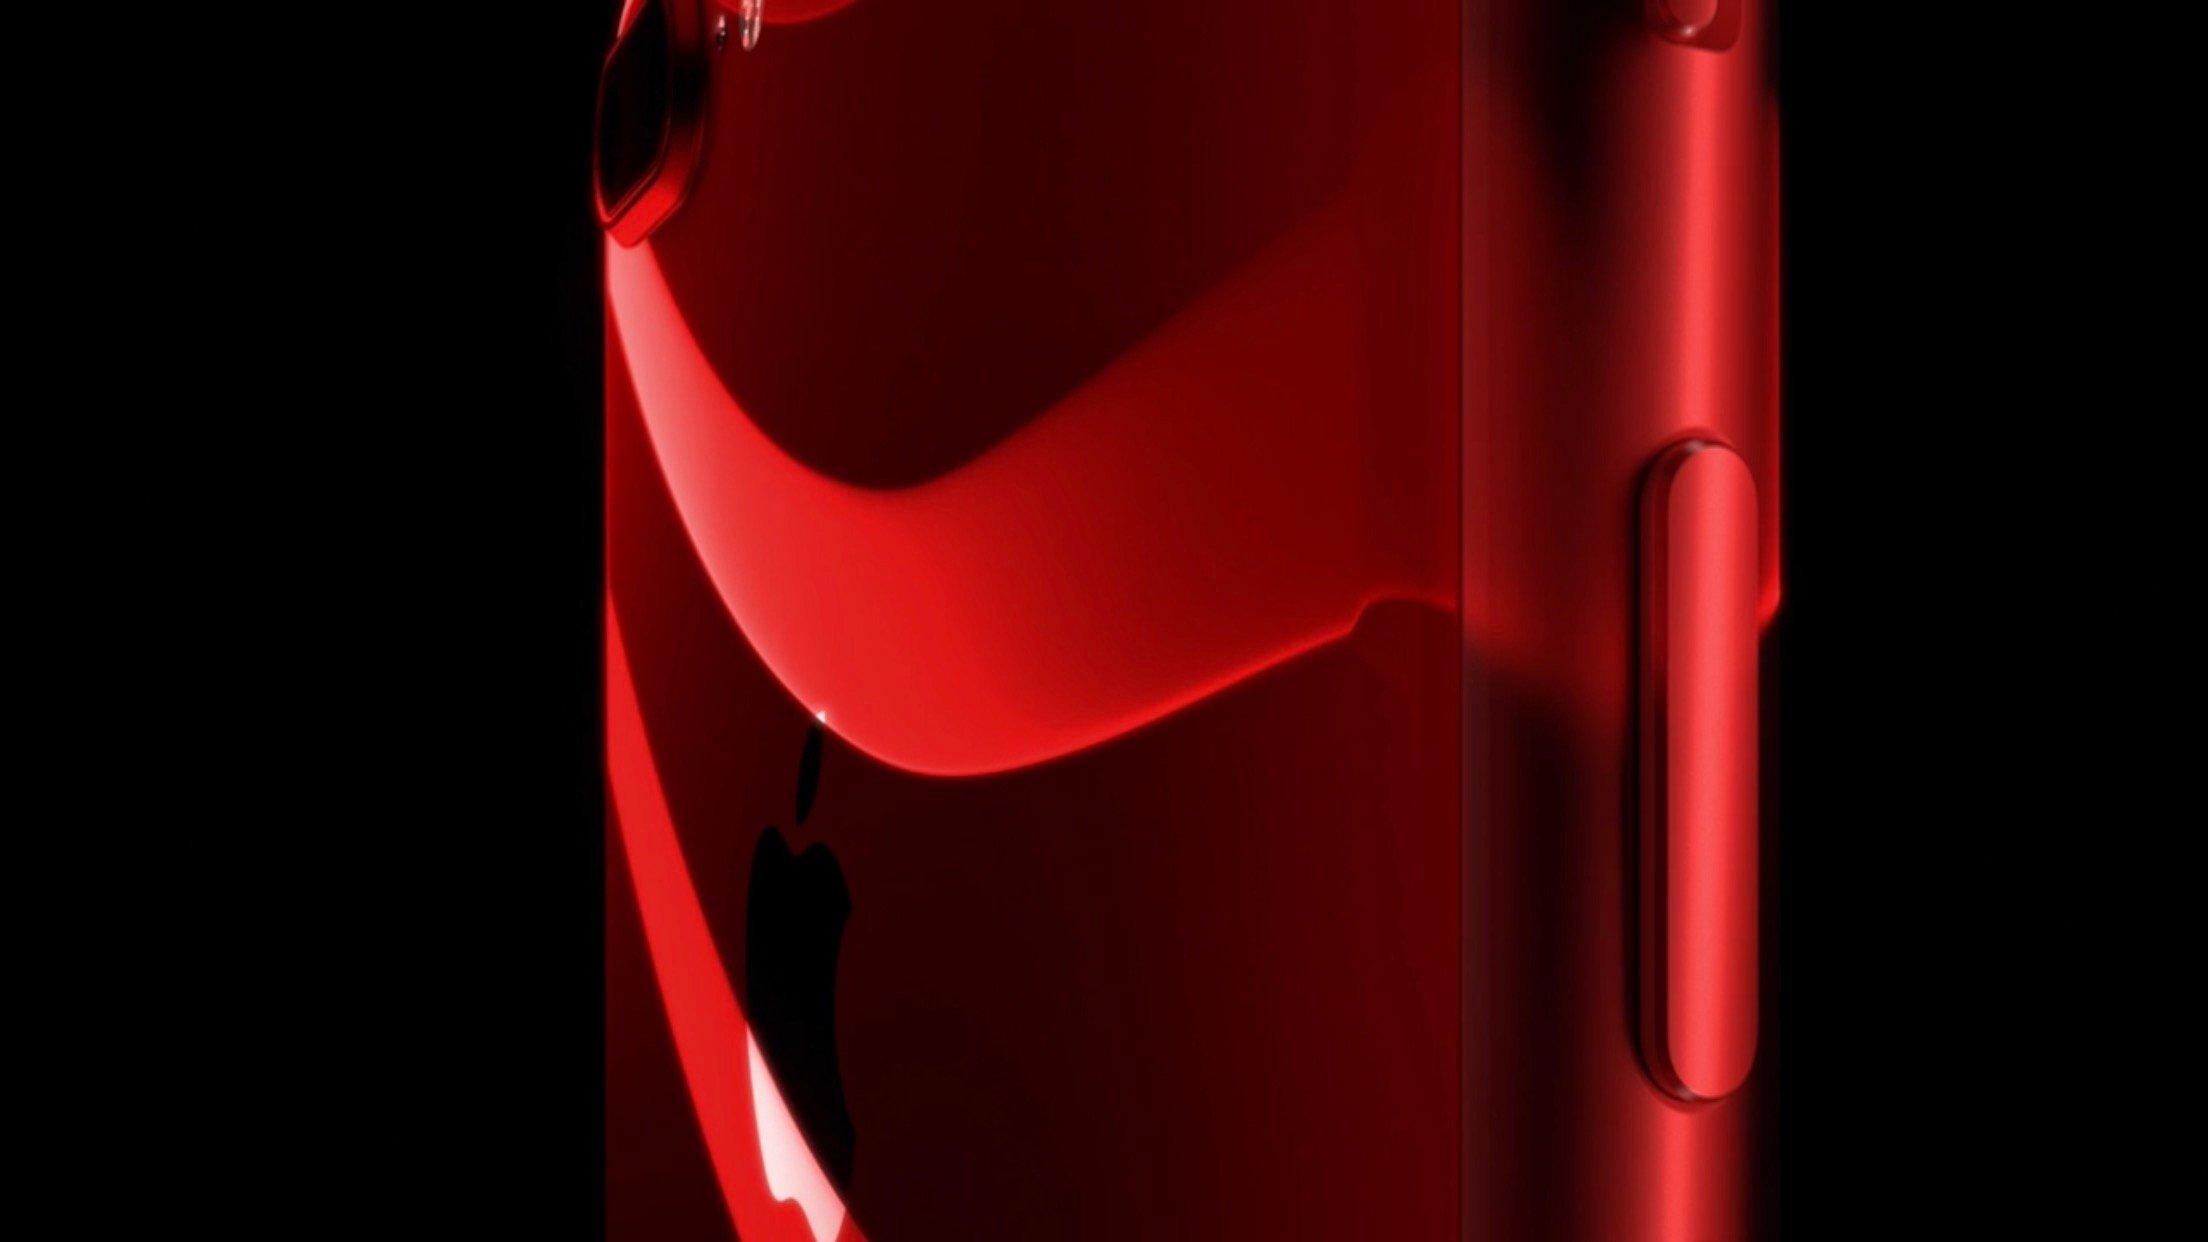 iPhone 8/iPhone 8 Plus (PRODUCT)RED Special Edition PV